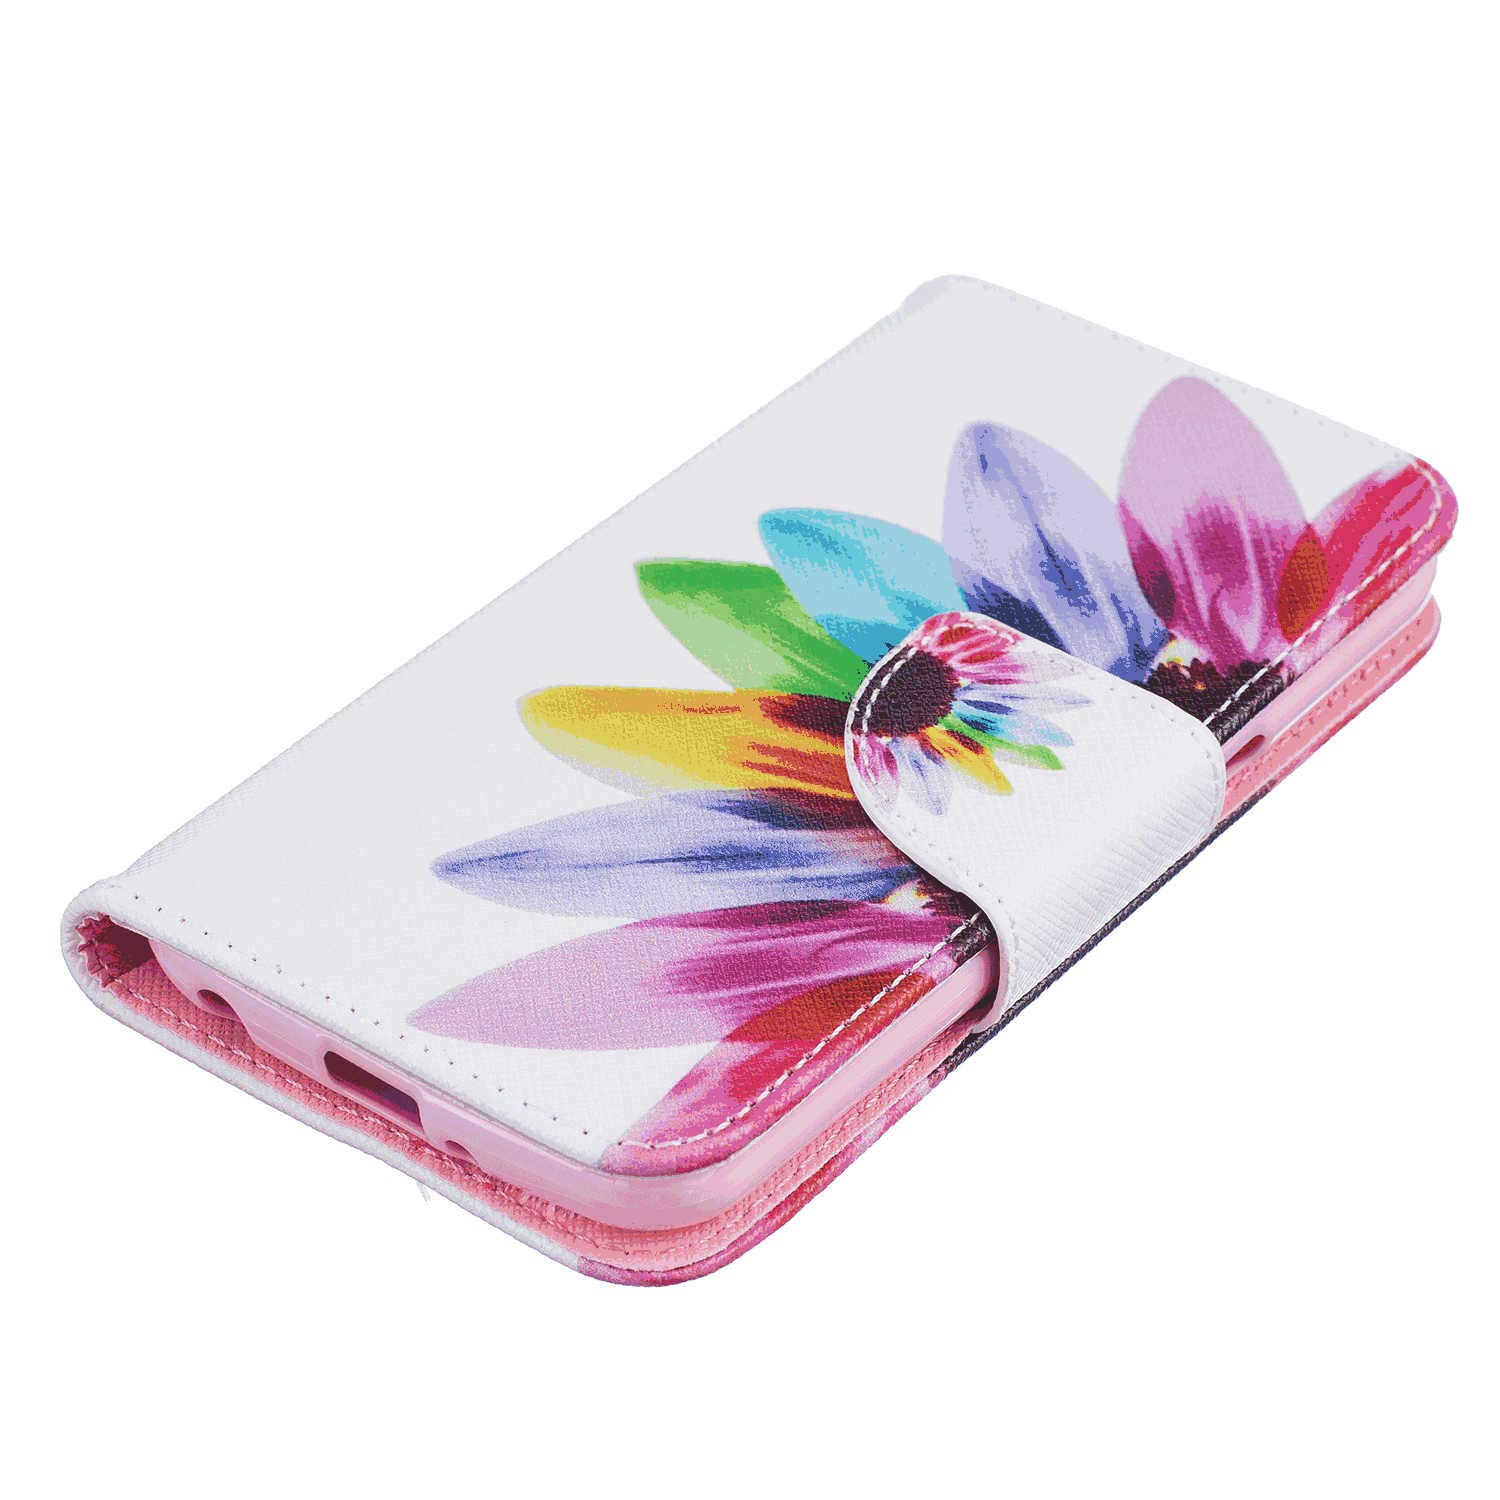 Leather Cover Business Gifts Wallet with Extra Waterproof Underwater Case Flip Case for Samsung Galaxy Note 10